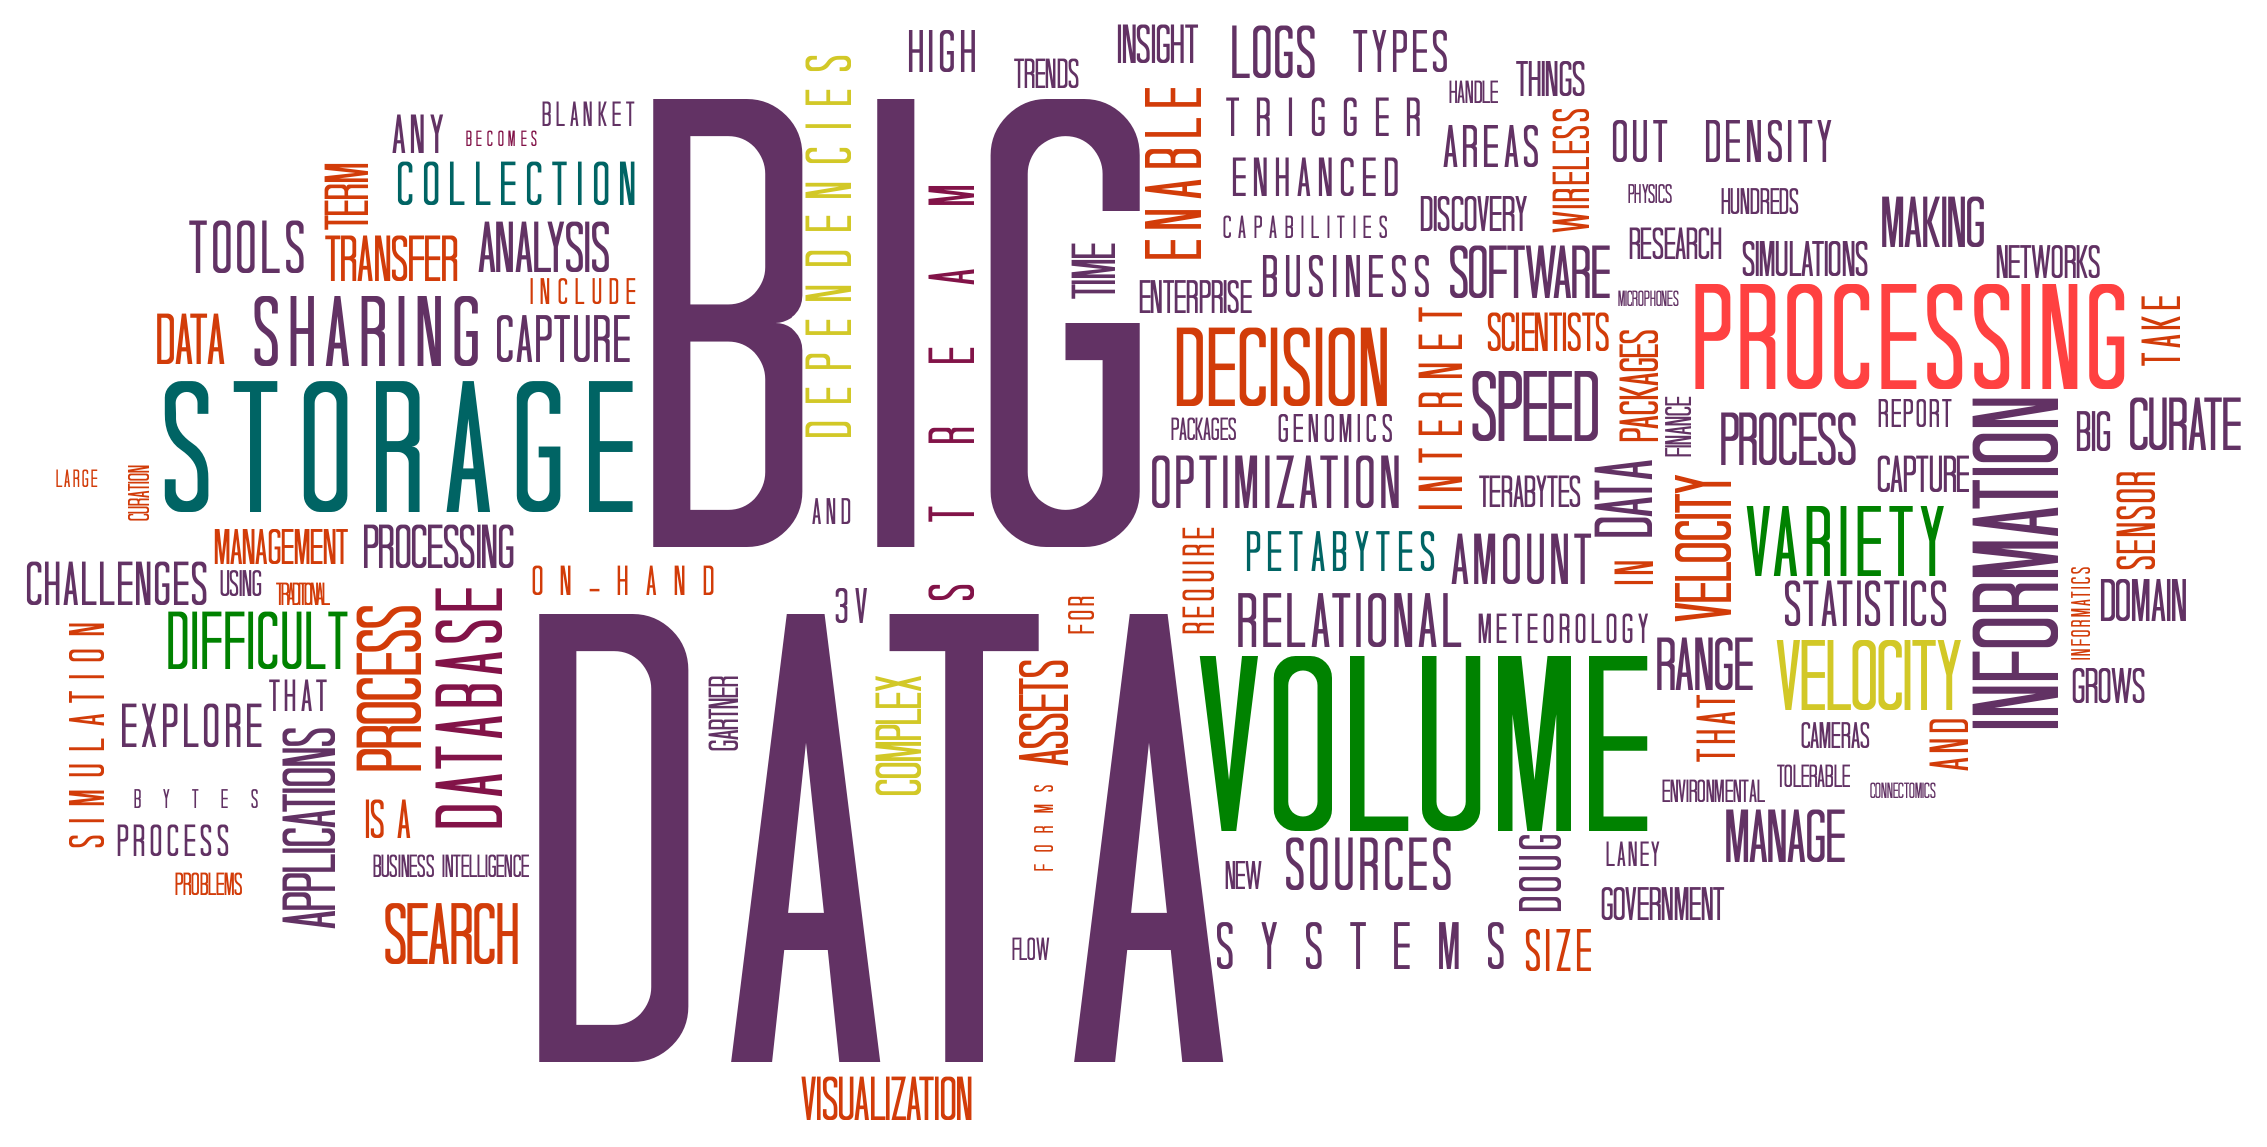 Enterprise Big-Data